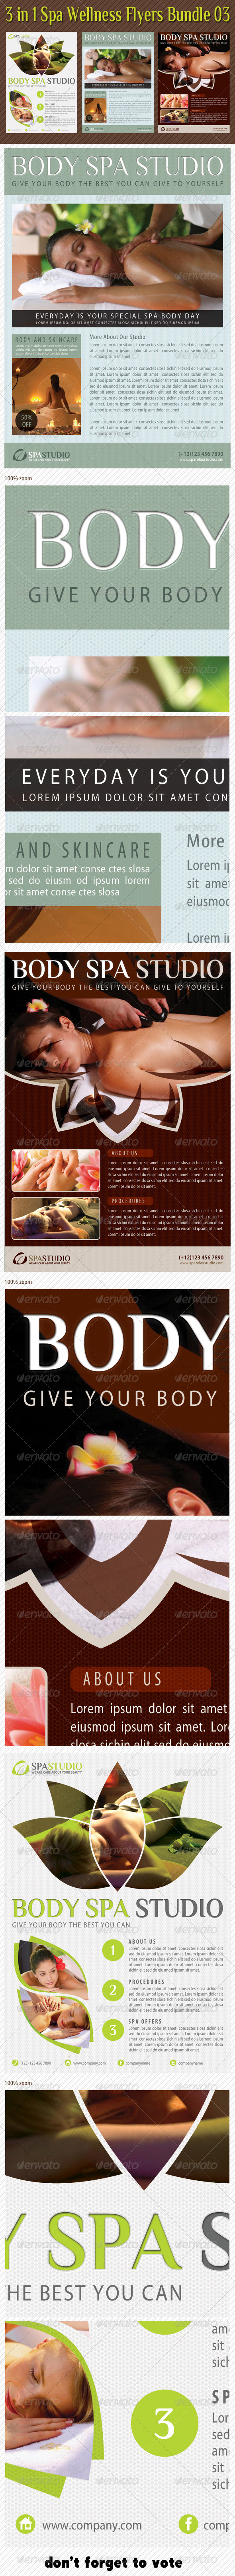 GraphicRiver 3 in 1 Spa Wellness Flyers Bundle 04 6594708